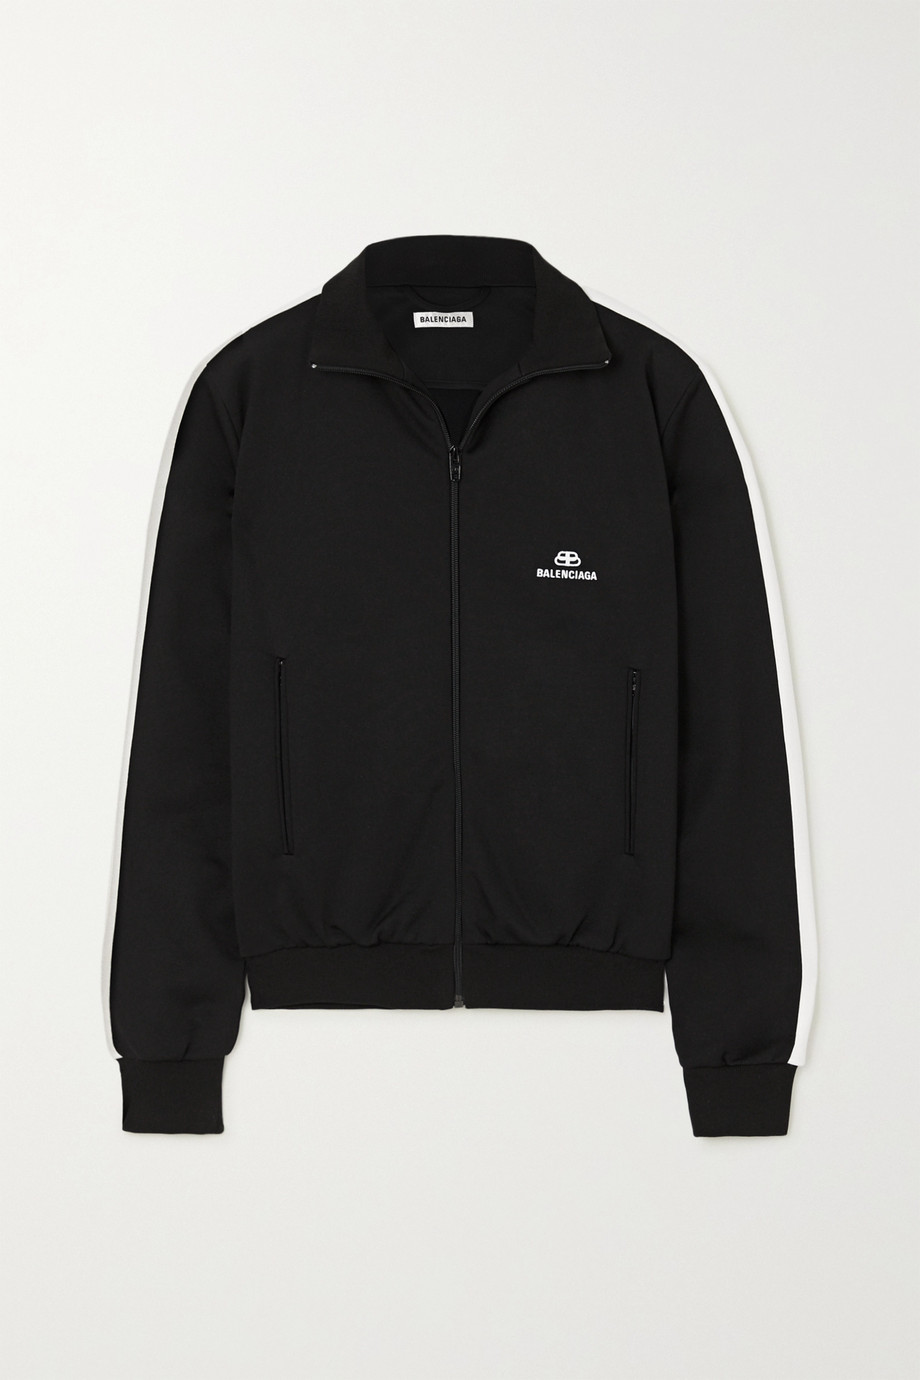 Balenciaga Striped embroidered tech-jersey track jacket